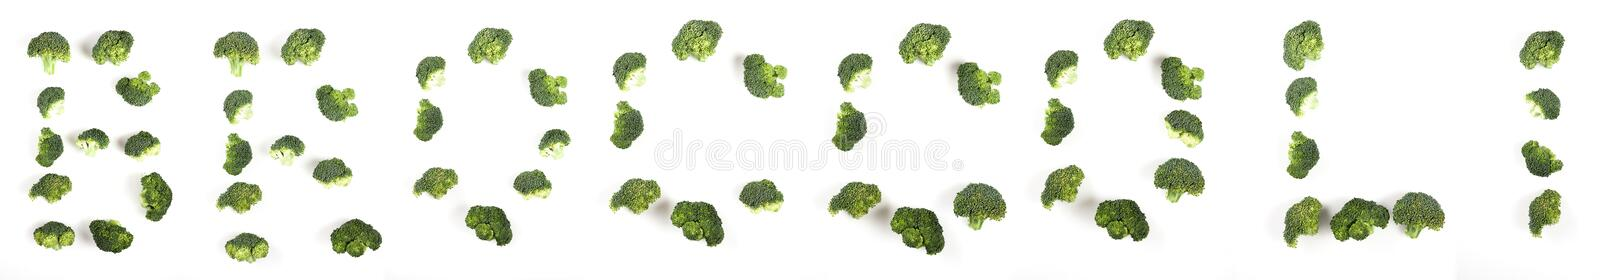 Word broccoli made from broccoli pieces. royalty free stock photo